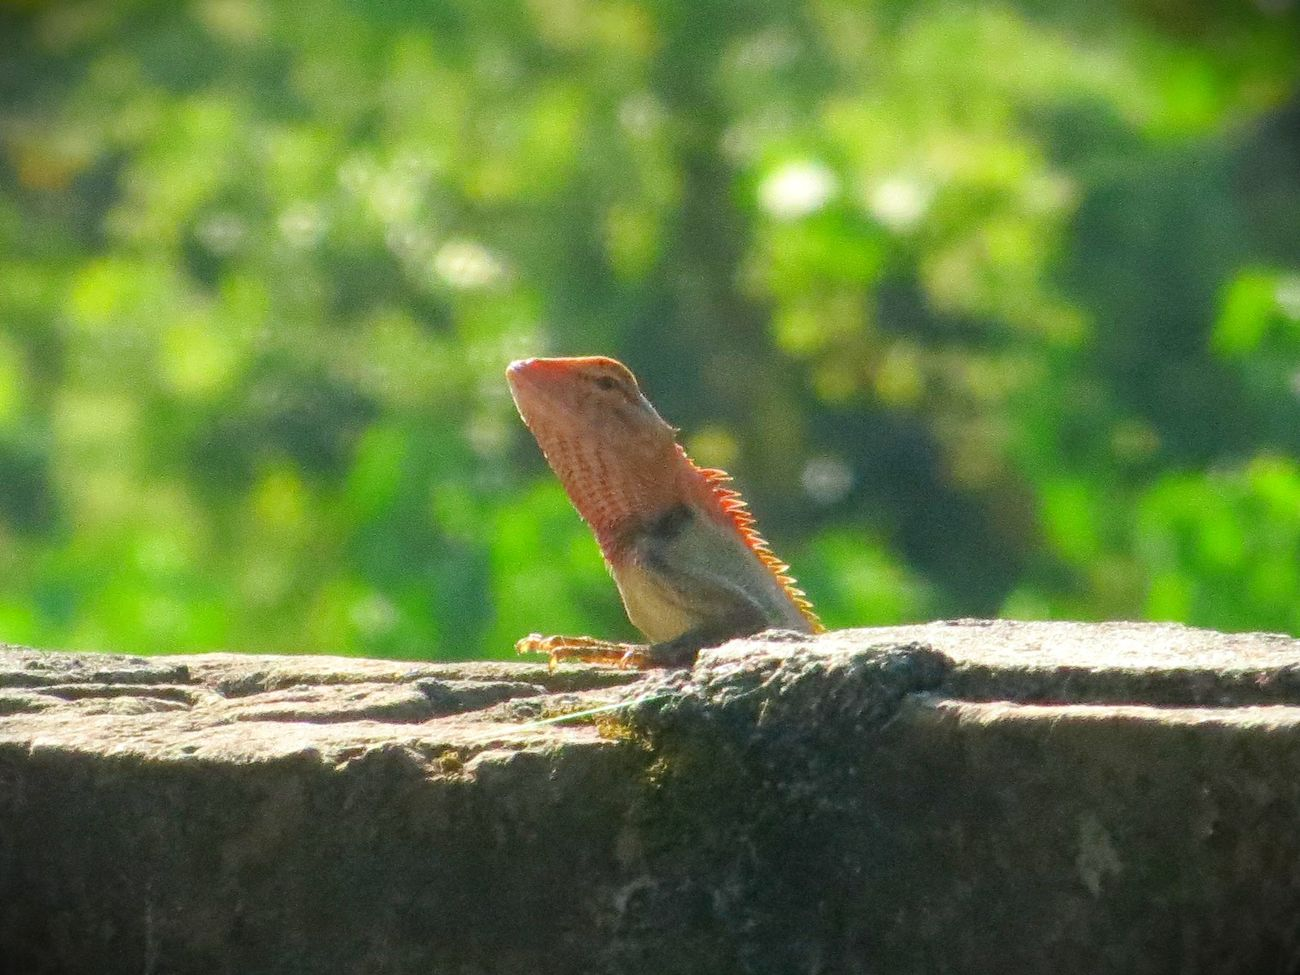 Garden Lizard First Eyeem Photo